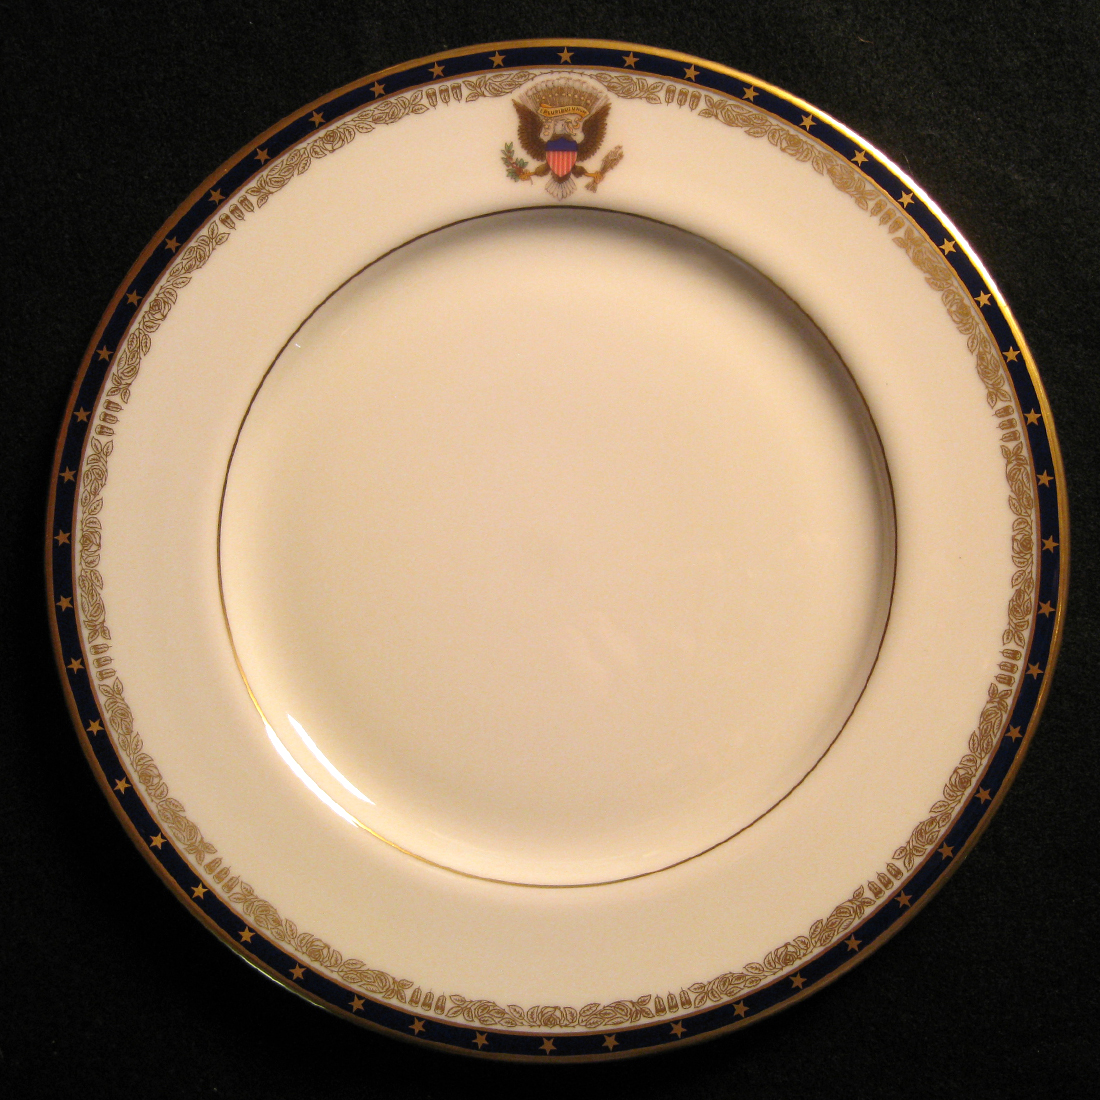 the raleigh degeer amyx collection,franklin roosevelt white house china,white house china,